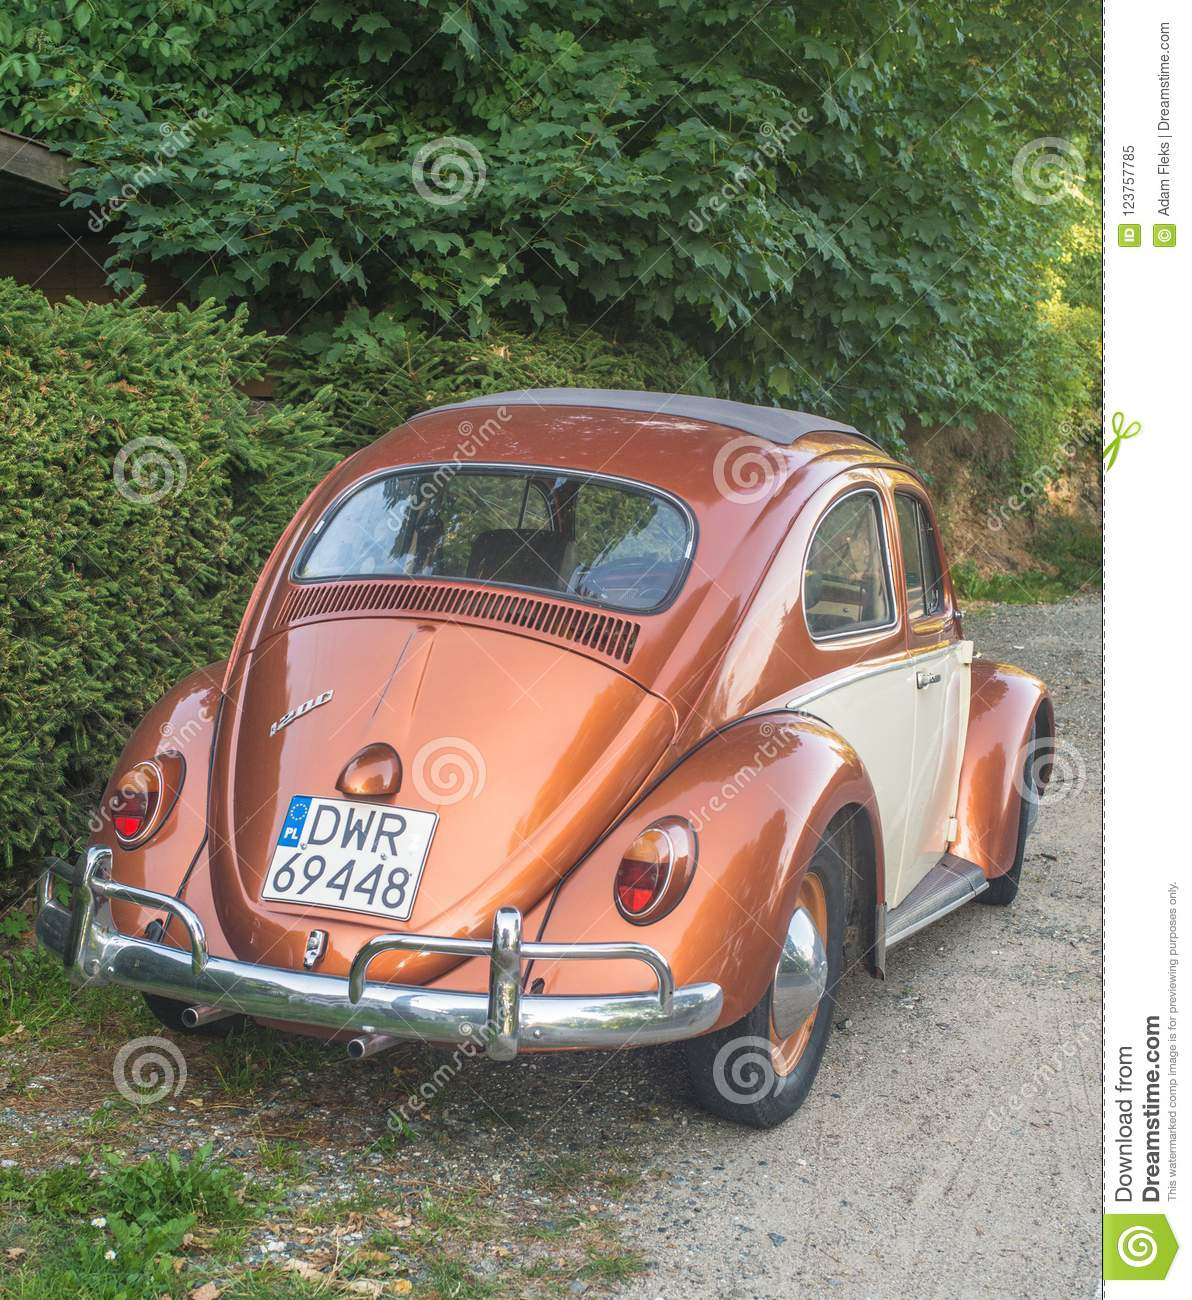 Vintage Volkswagen Beetle 1200 Editorial Image Image Of Chromed